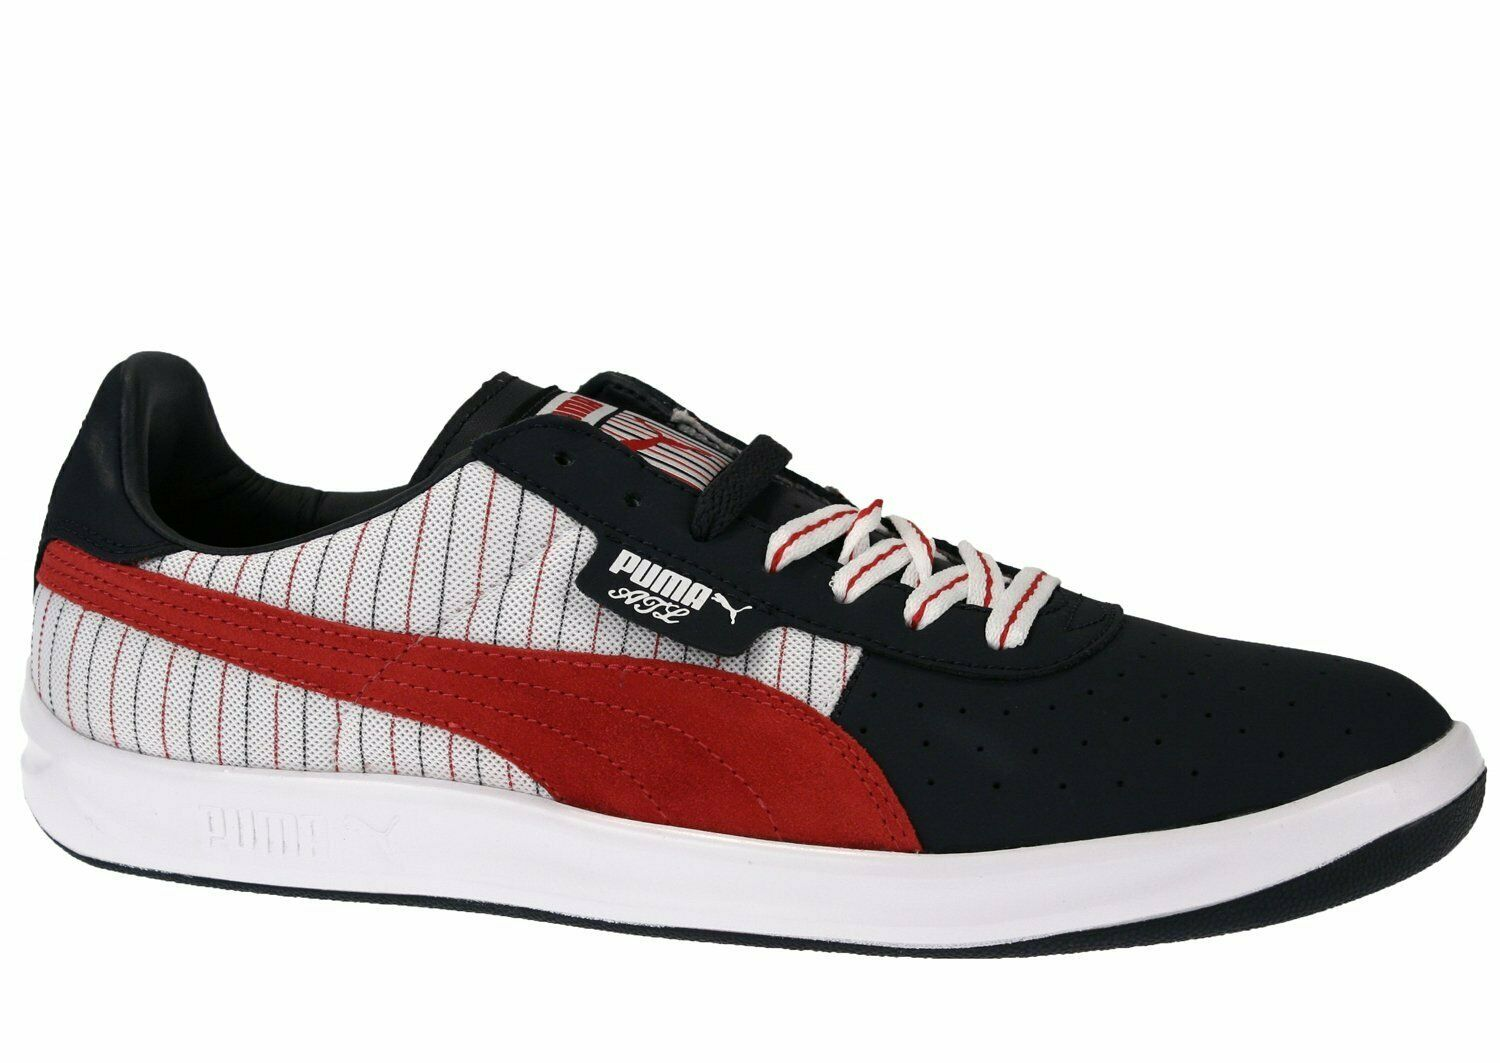 Puma California Men's City Sneakers Shoes - City and Color Options 1